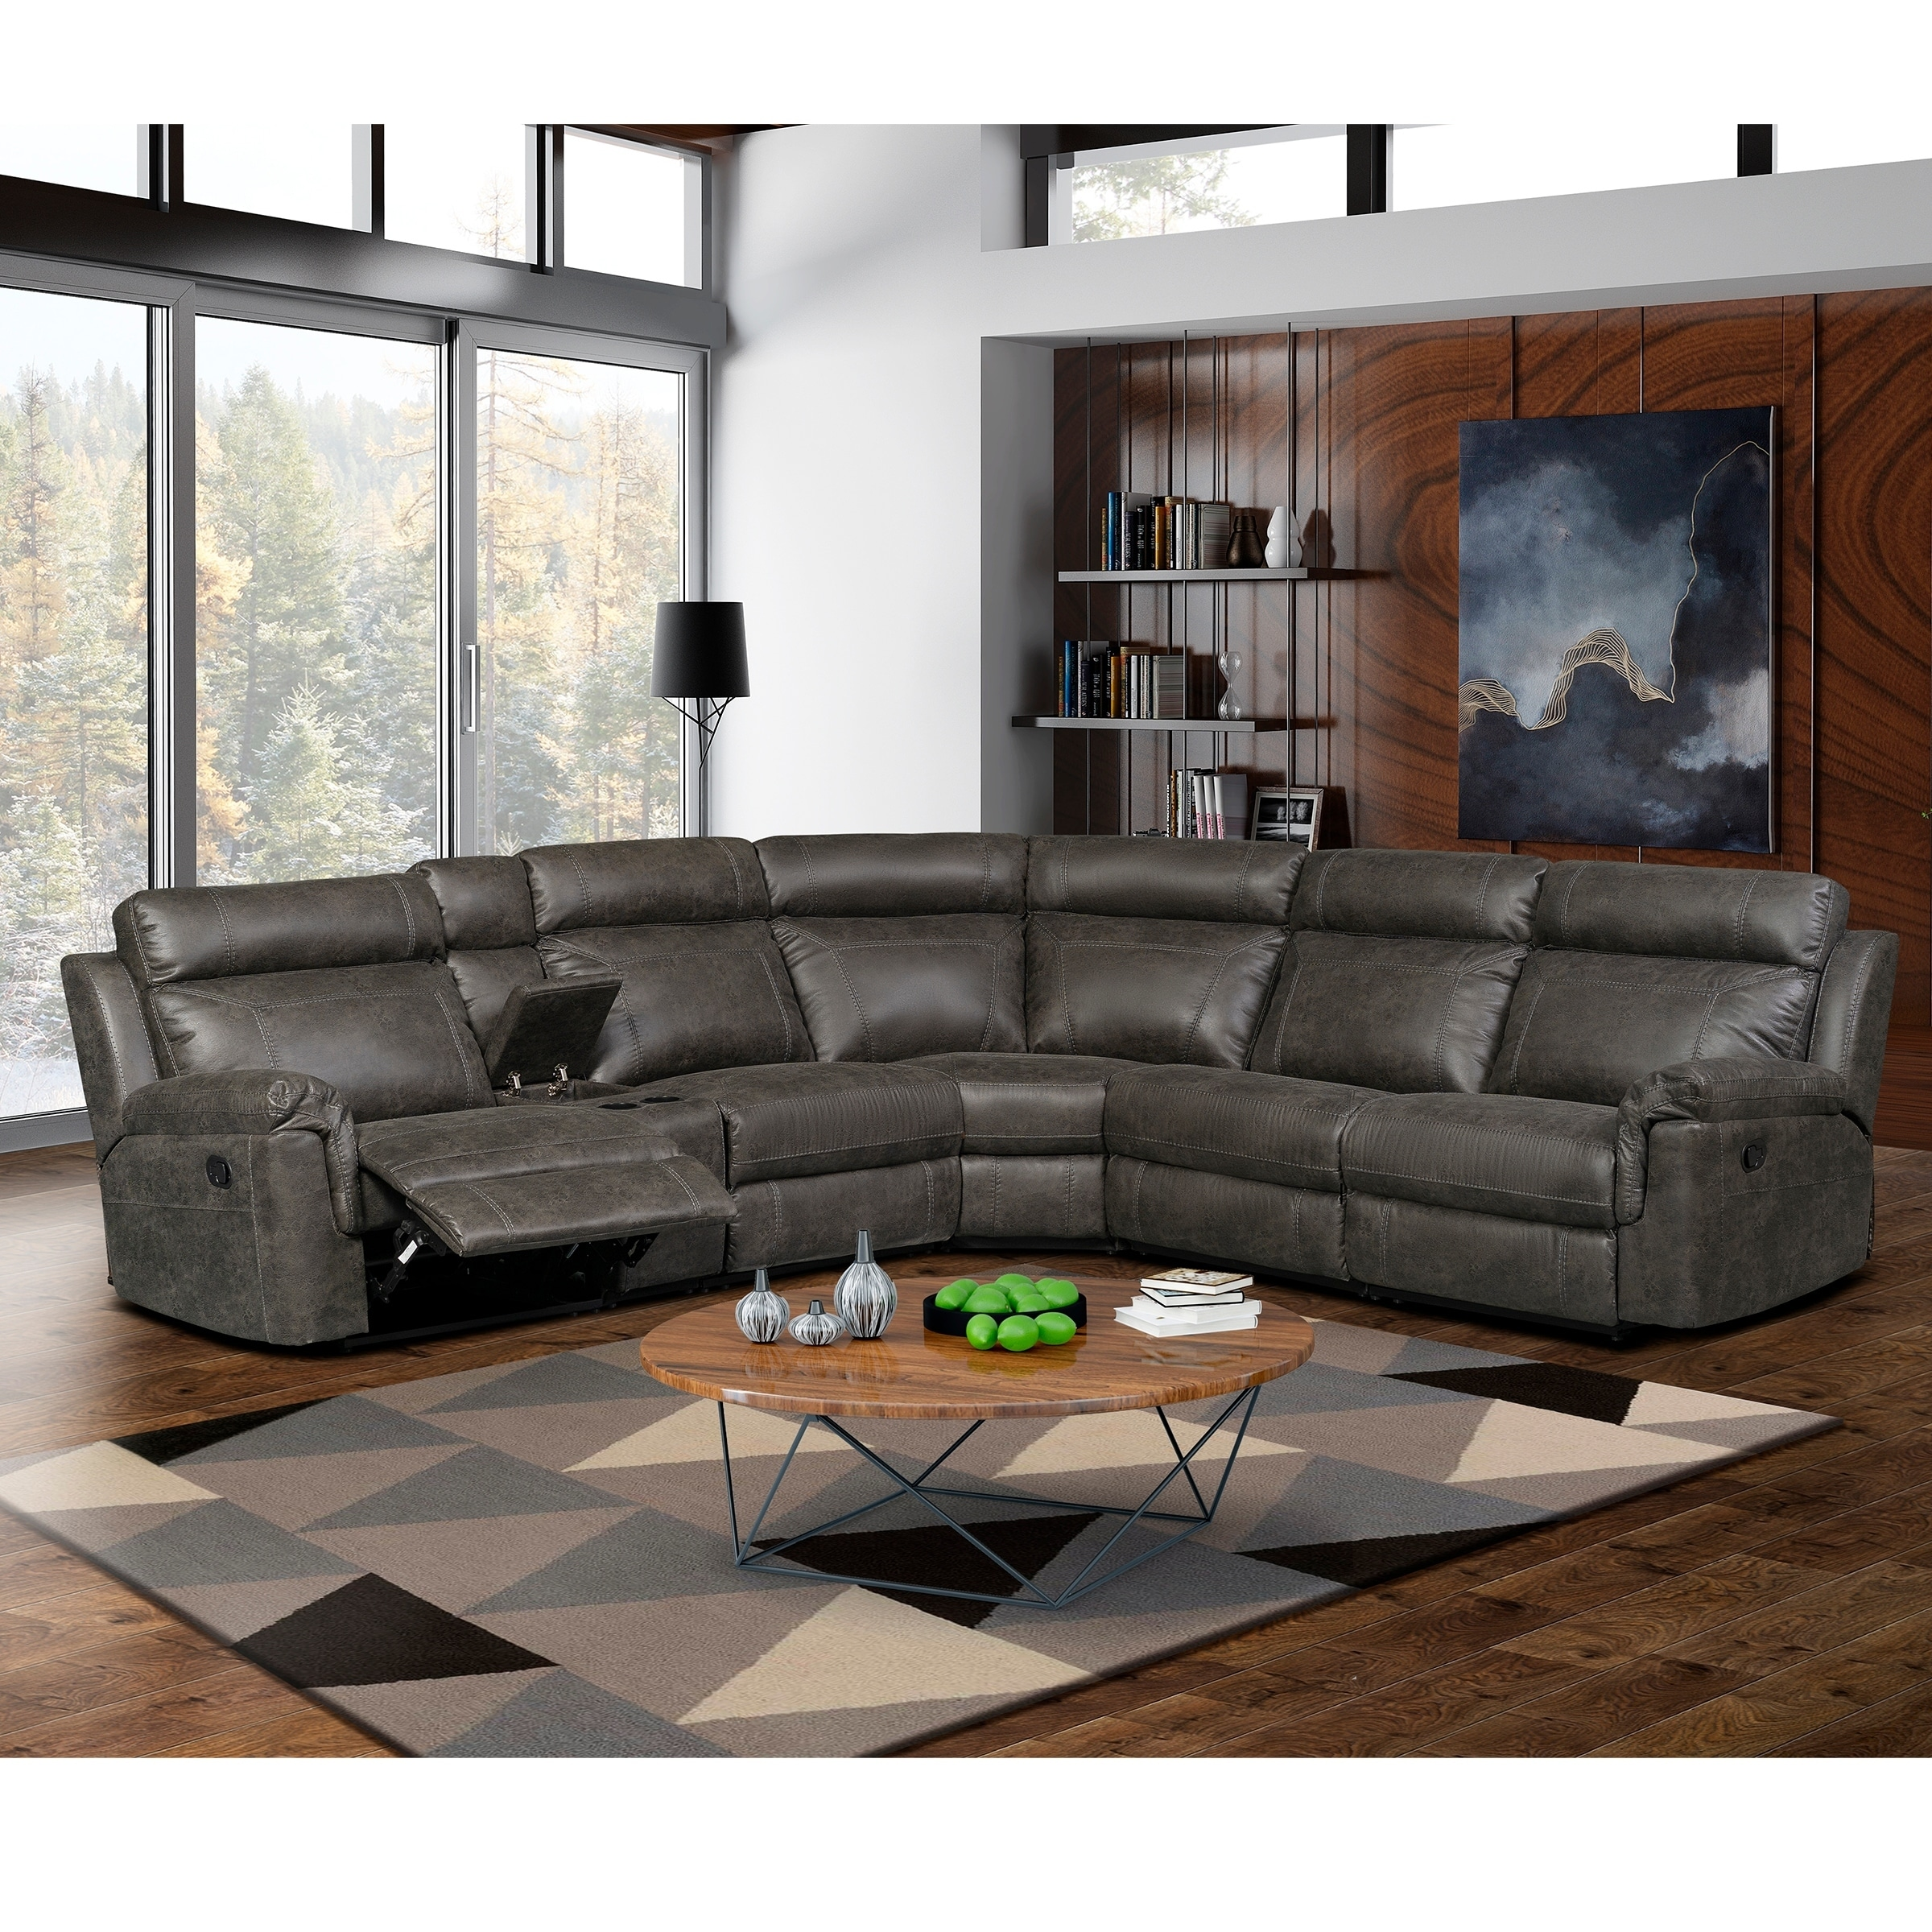 Merveilleux Nicole Brown Large 6 Piece Family Sectional With 3 Recliners, Cup Holders,  And